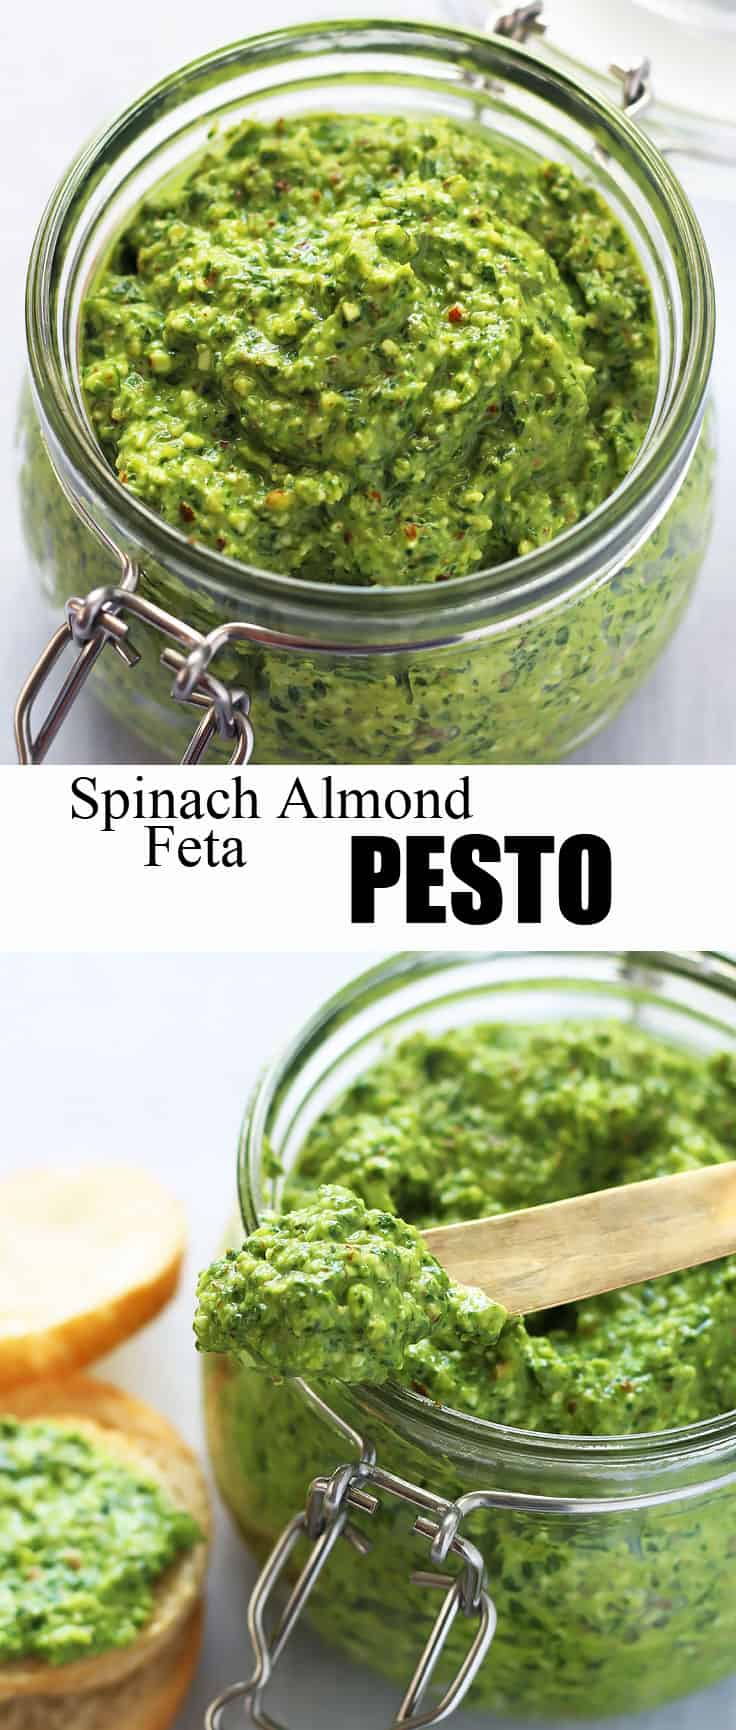 This delicious Spinach Pesto is made with almonds and feta cheese. The coarse texture makes it perfect as a dip or spread. #pesto #appetizer